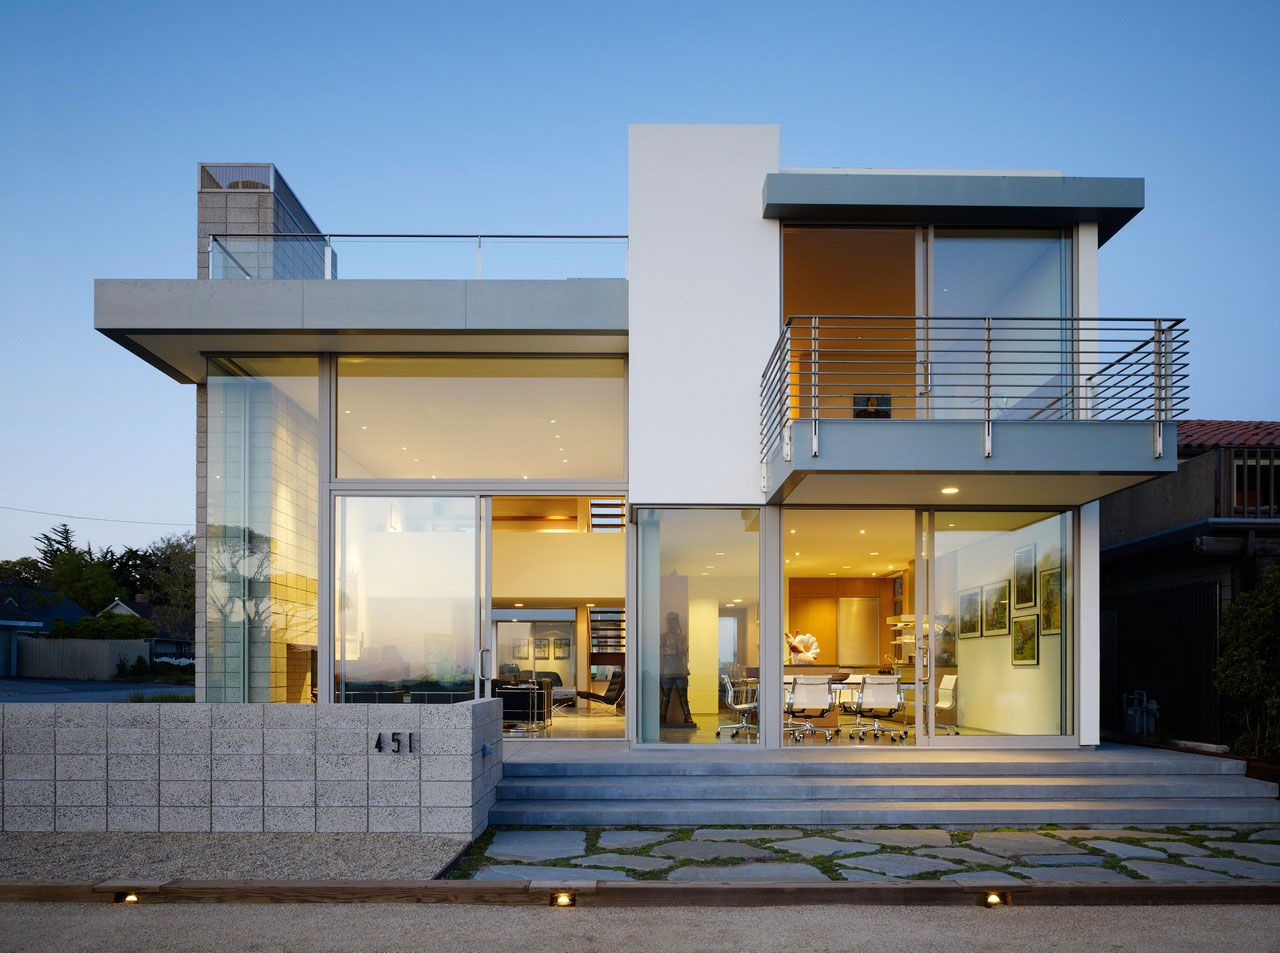 Best Images About Home Design Ideas On Pinterest House Design    Contemporary home design ideas. Contemporary Home Design Images  Best Ideas Architecture With